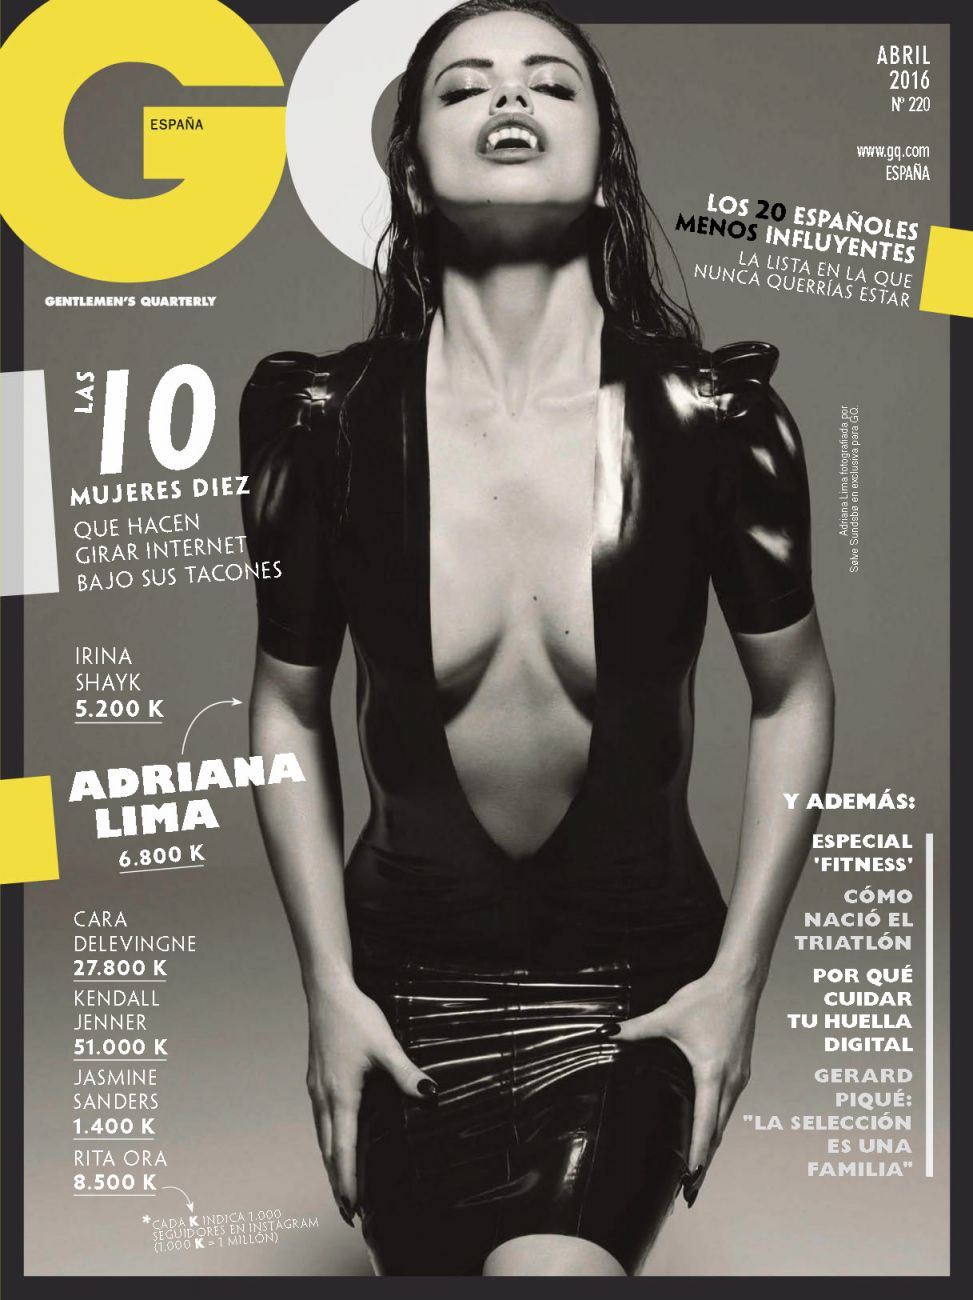 GQ magazine cover of Adriana Lima in black dress showing cleavage with vampire teeth